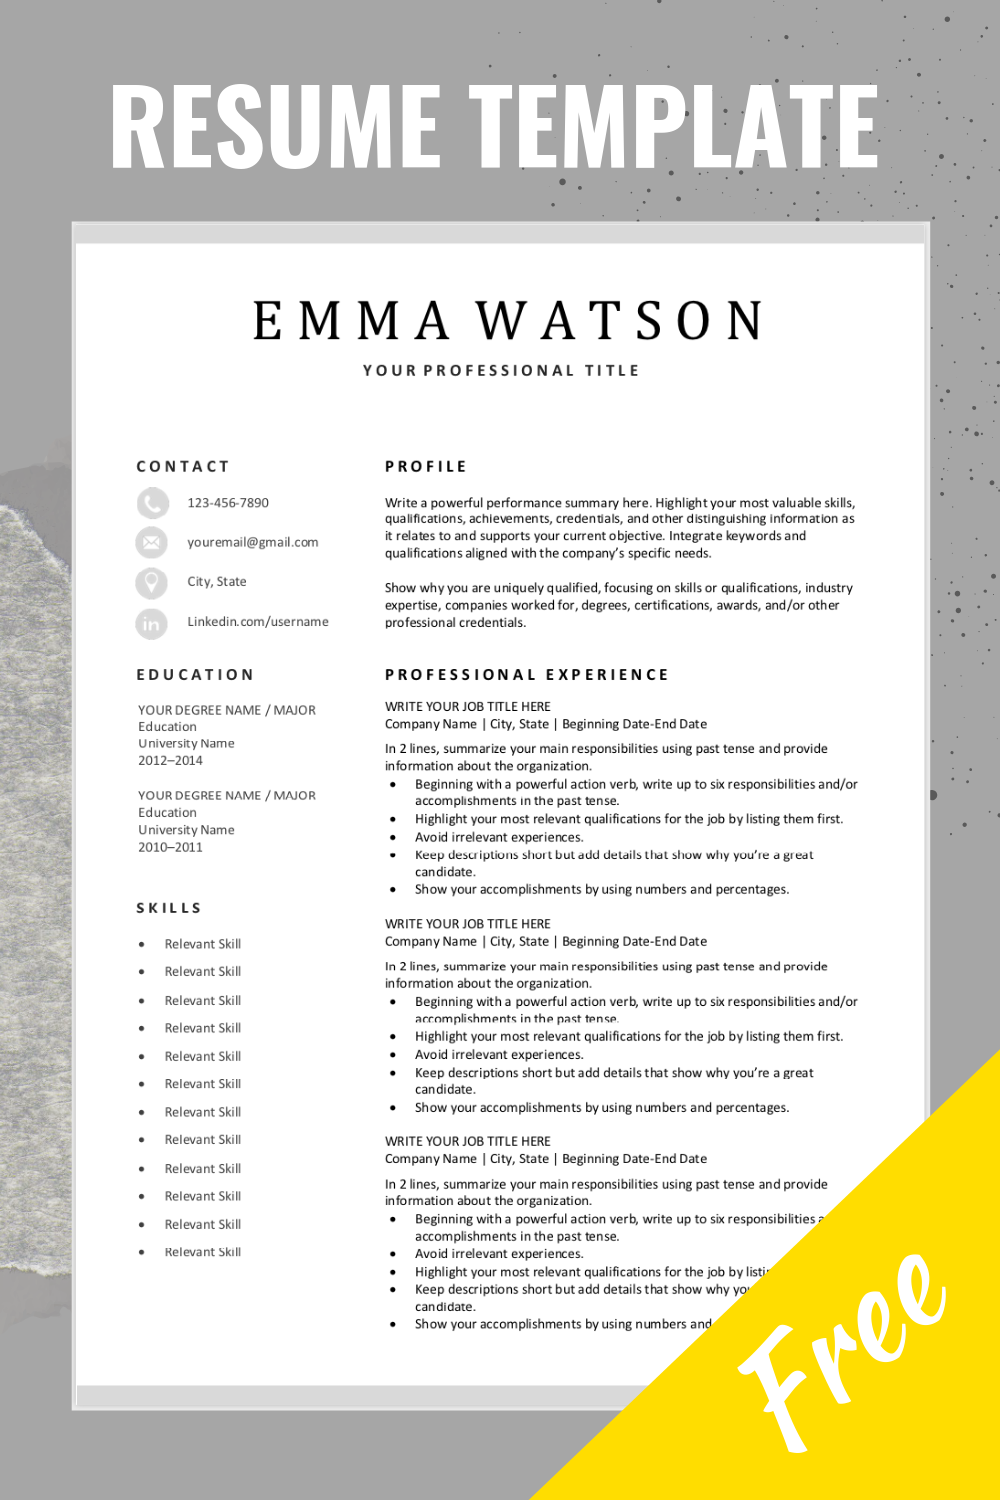 Looking For A Free Editable Resume Template Sign Up For Our Job Search Tips And Download This Templat Resume Template Job Resume Examples Resume Writing Tips